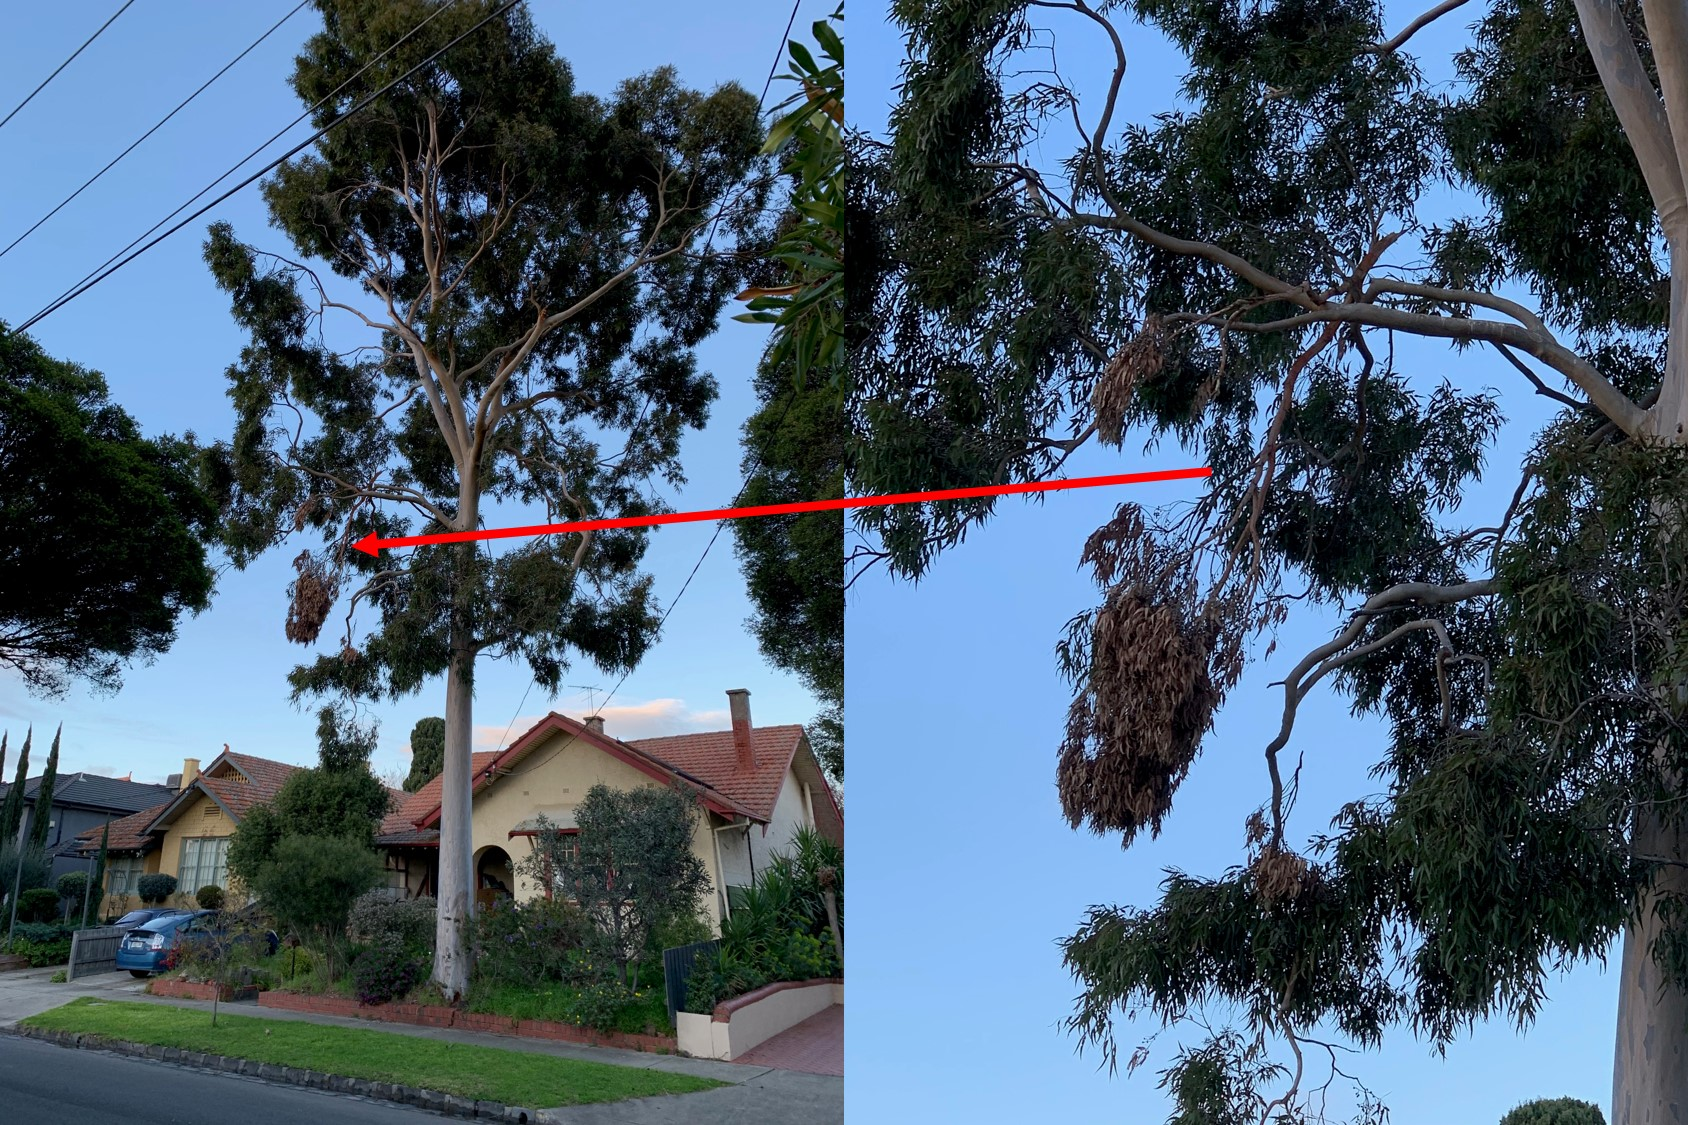 Large gum trees in residential areas pose a threat to life and property